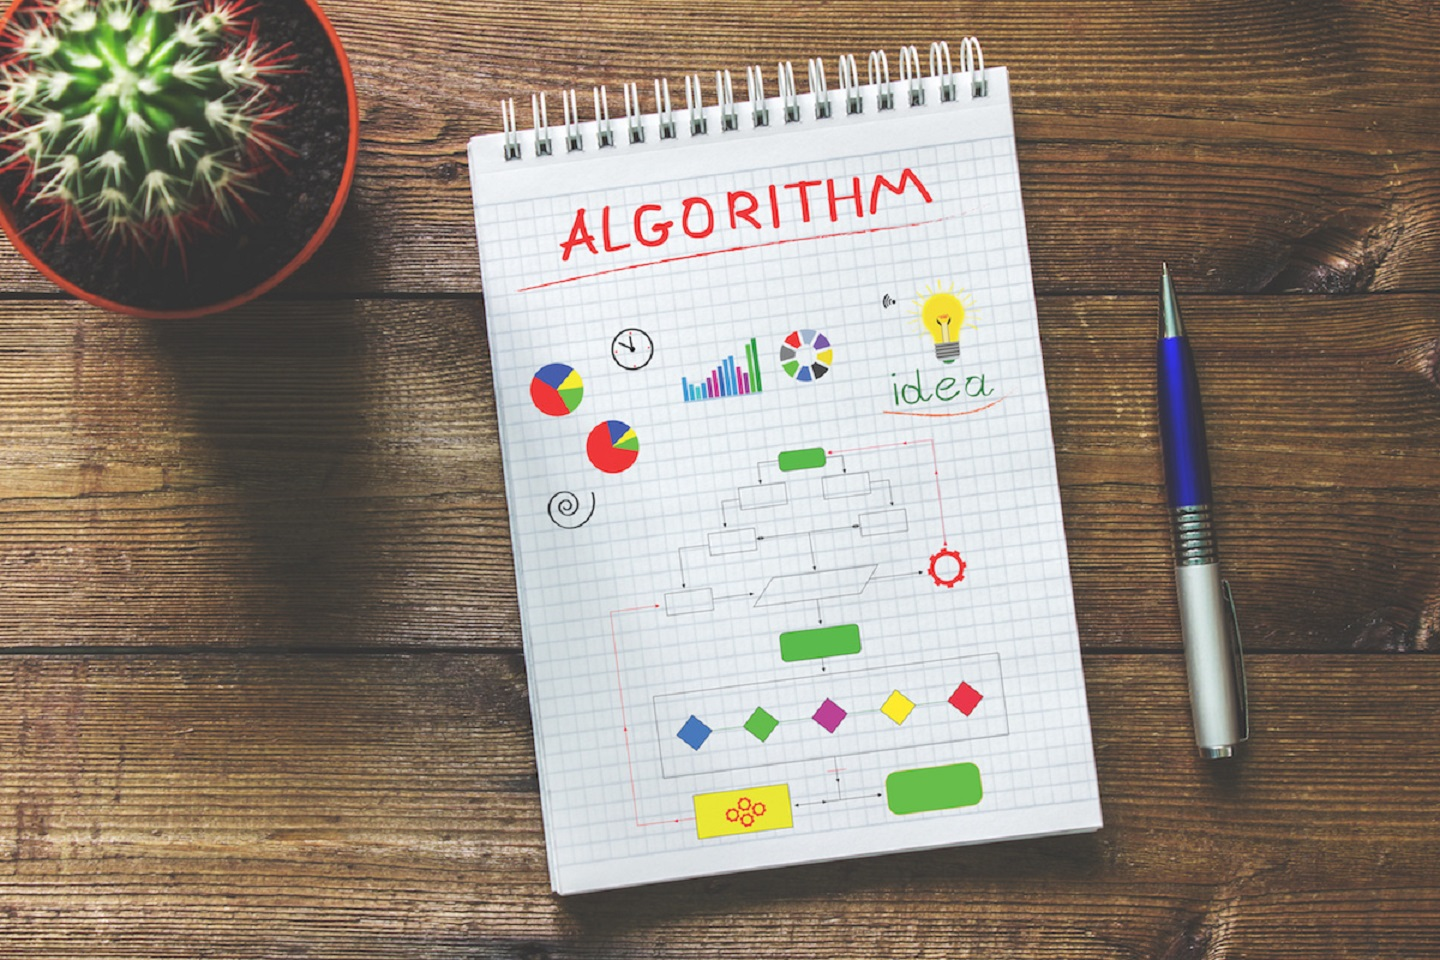 The notebook with geometric figures and schemes that shows algorithms